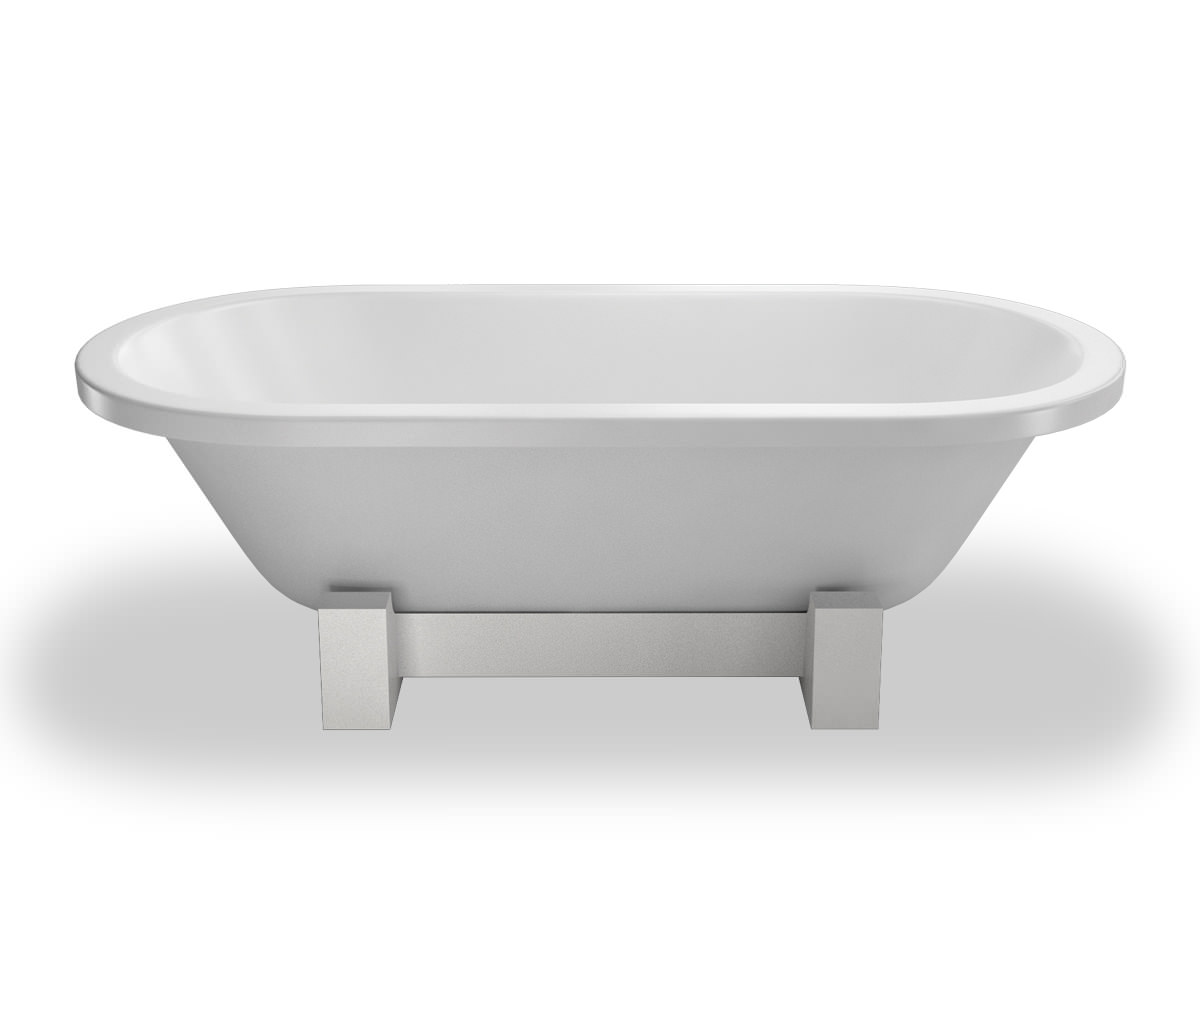 Clearwater Orient Modern Bath 1690 X 750mm With Wood Frame